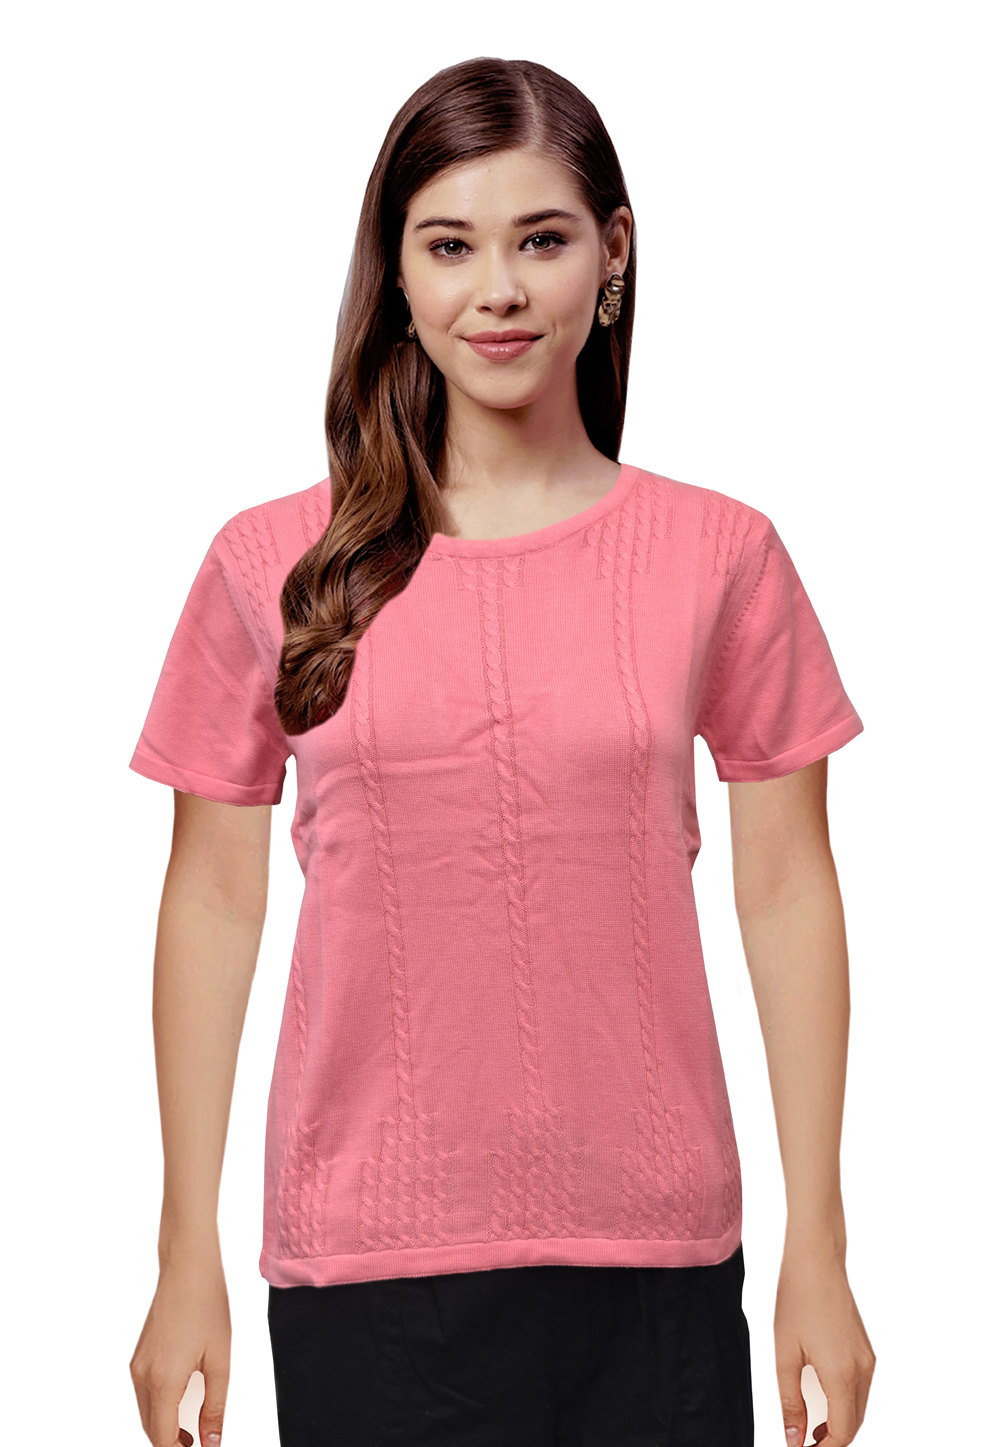 Pink Woolen Knitted Sweater Tops 214258